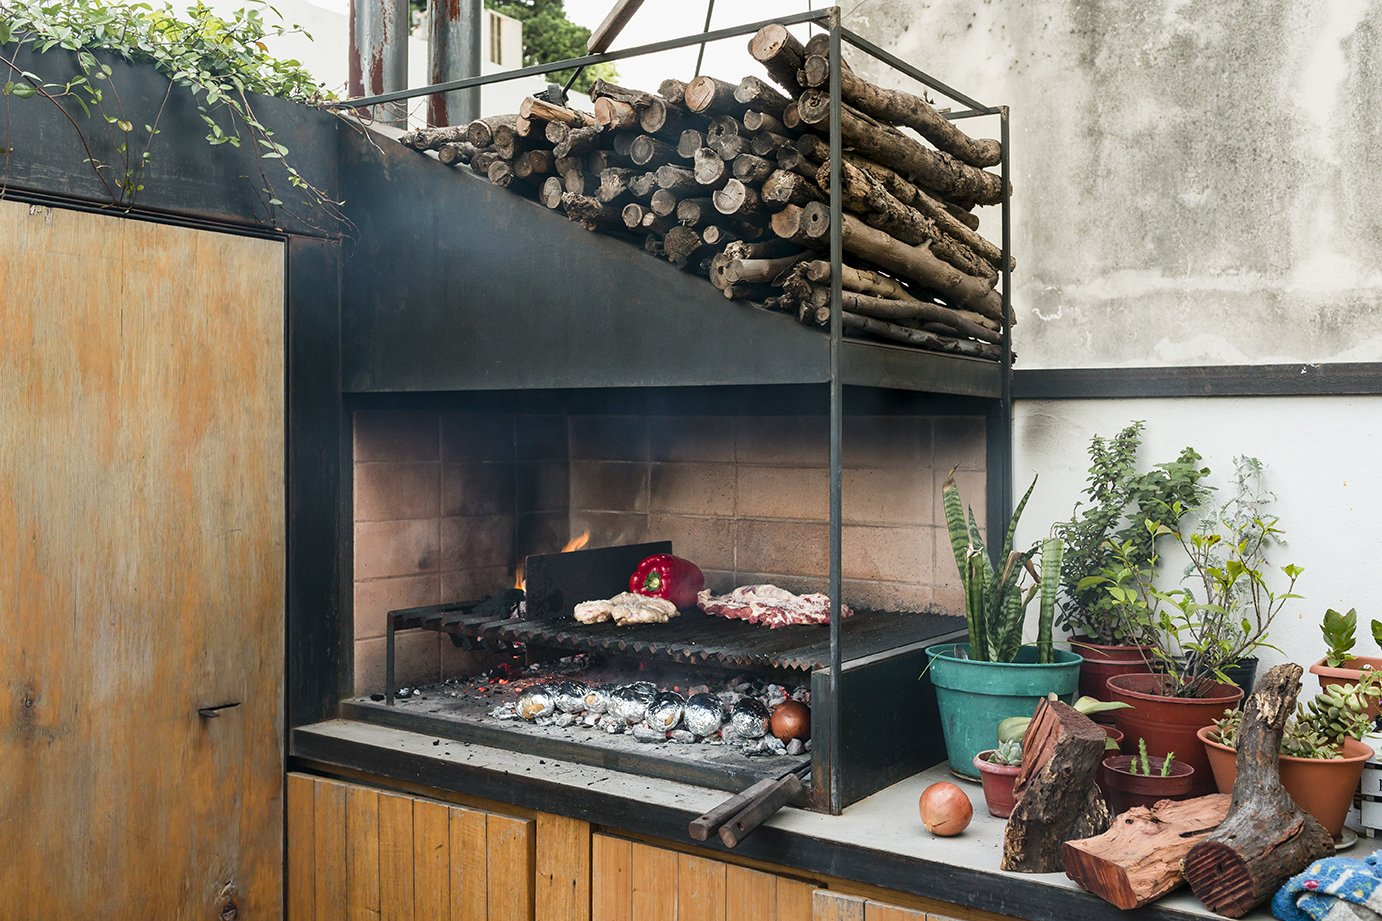 Outdoor and Small Patio, Porch, Deck A sleek version of the traditional  parrilla, or grill, handcrafted  by Oficios Asociados, has pride  of place on the patio counter. - Buenos Aires, Argentina Dwell Magazine : September / October 2017  Photos from An Architect Turns His Small, Dark Apartment in Buenos Aires Into a Bright and Airy Home